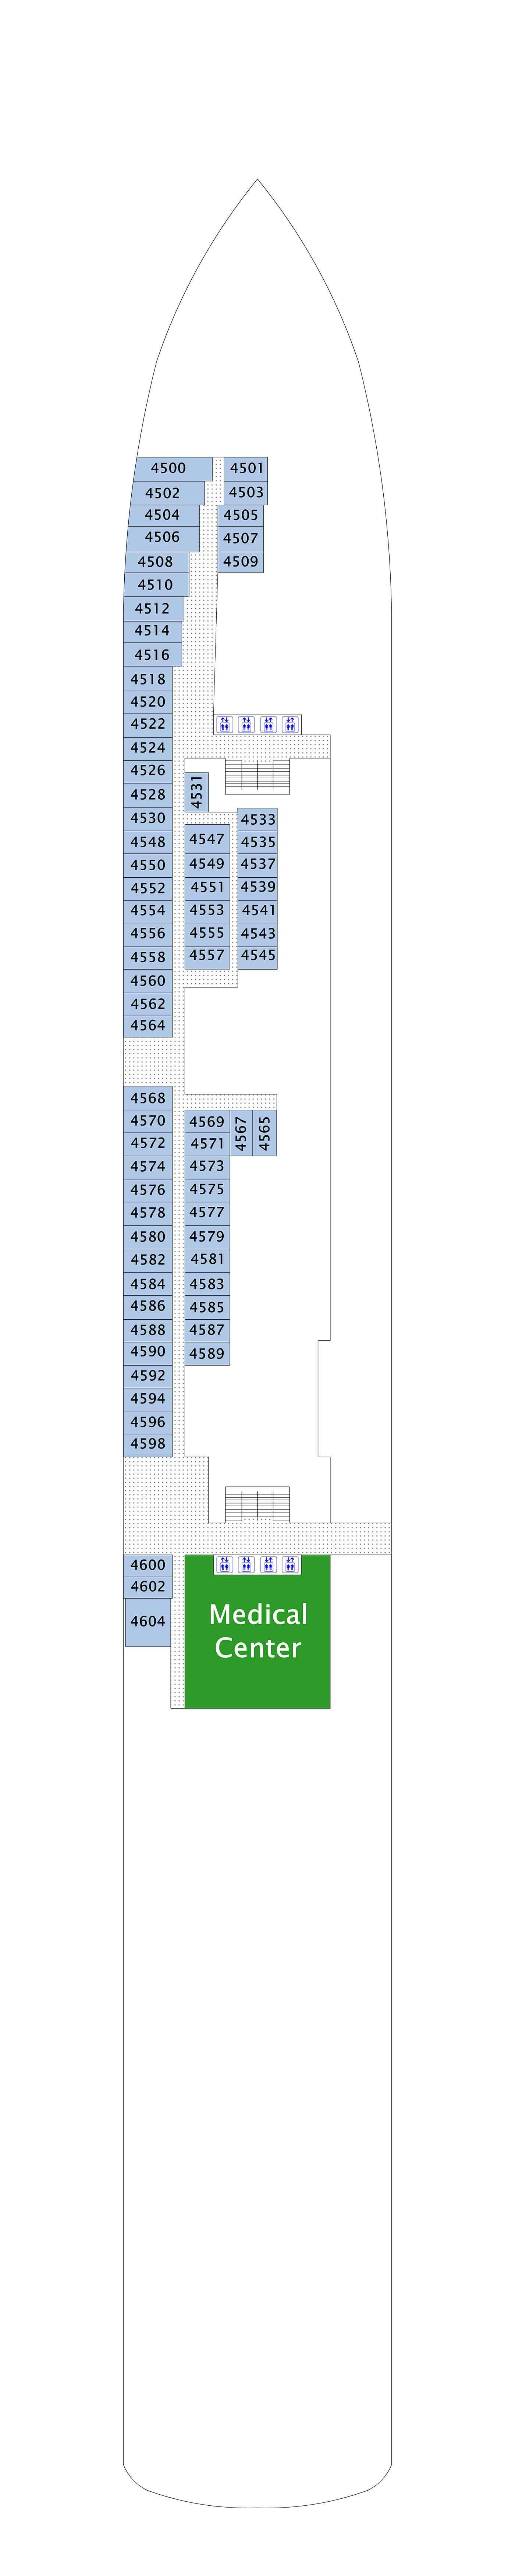 Norwegian Gem deck plan 4